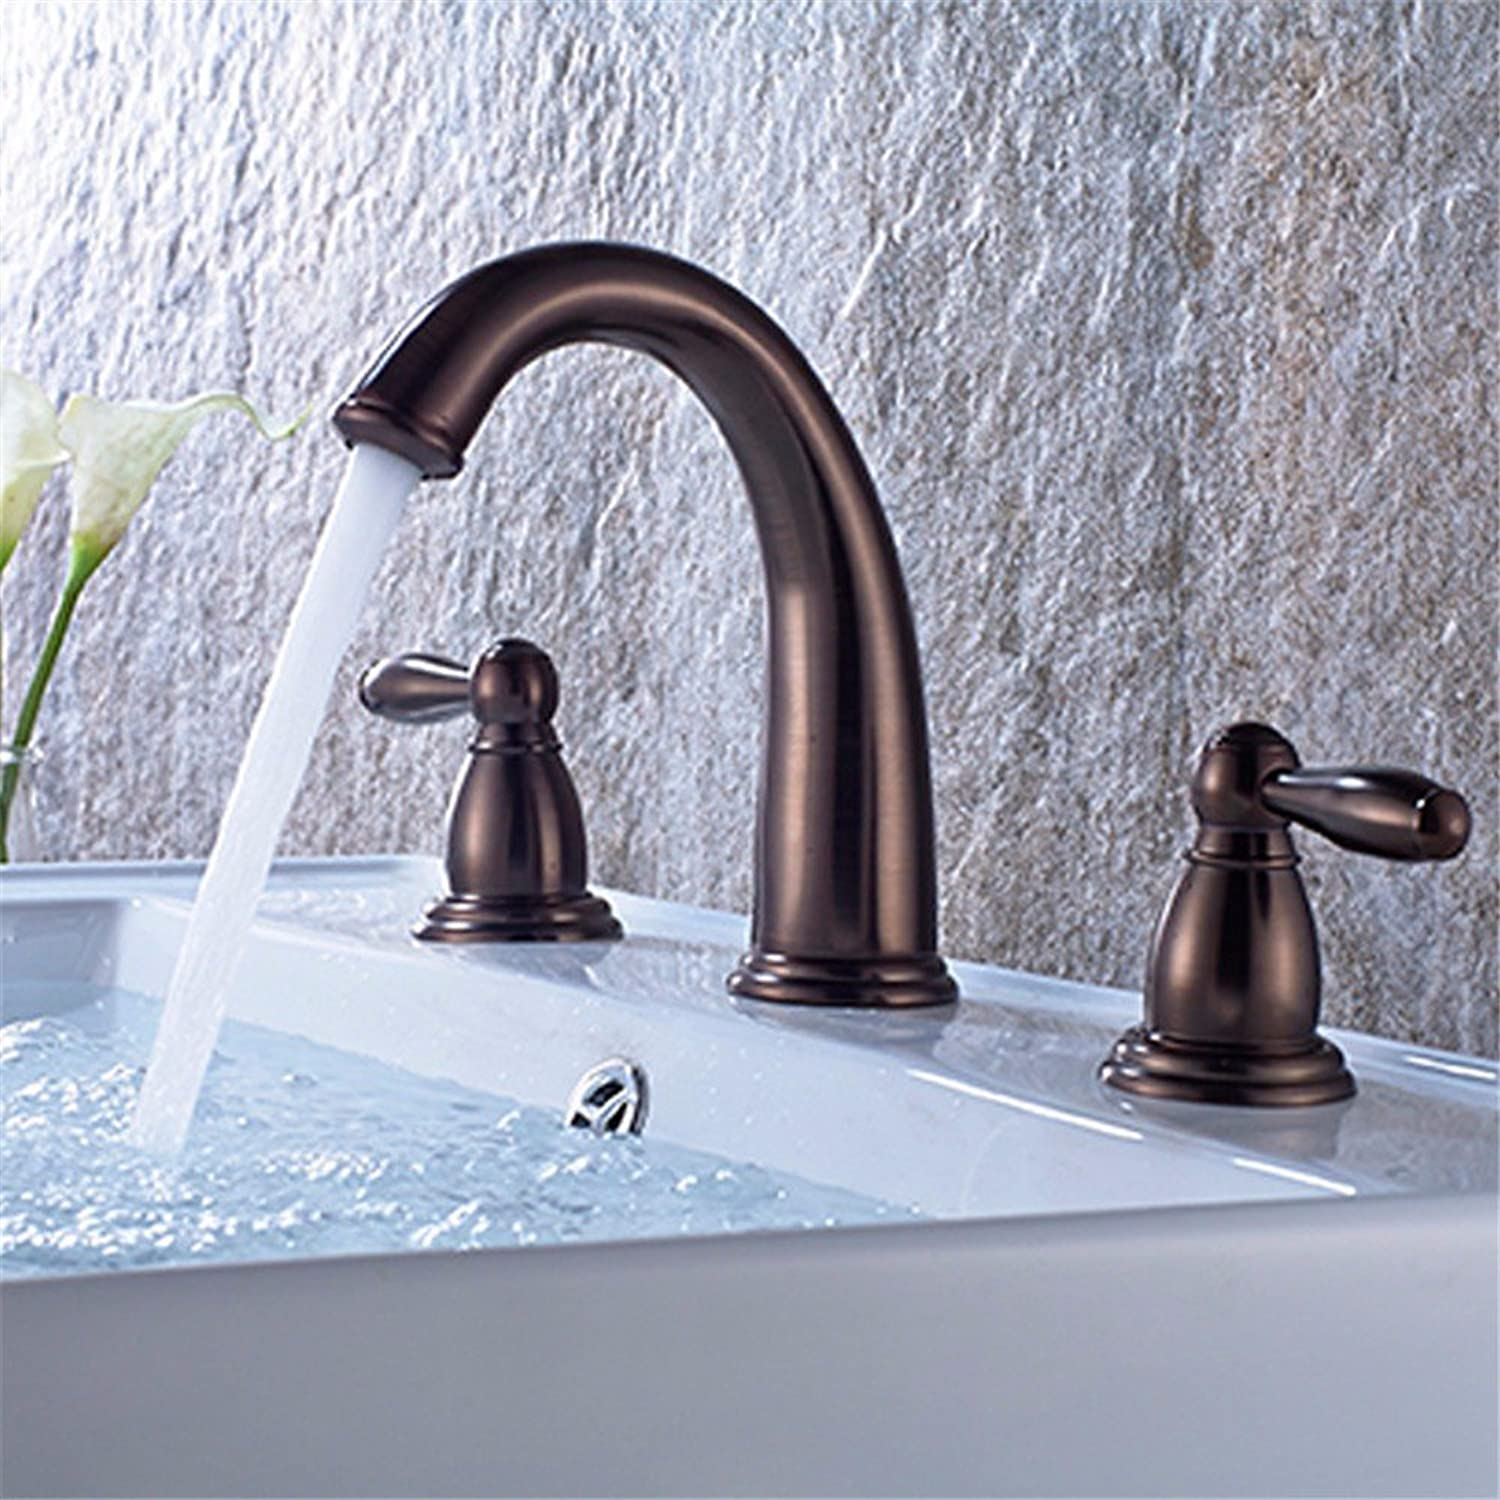 Commercial Single Lever Pull Down Kitchen Sink Faucet Brass Constructed Polished Nordic Modern Minimalist Retro Stainless Steel Bronze Brass Waterfall Bathroom Basin Faucet Hotel Kitchen Bathroom